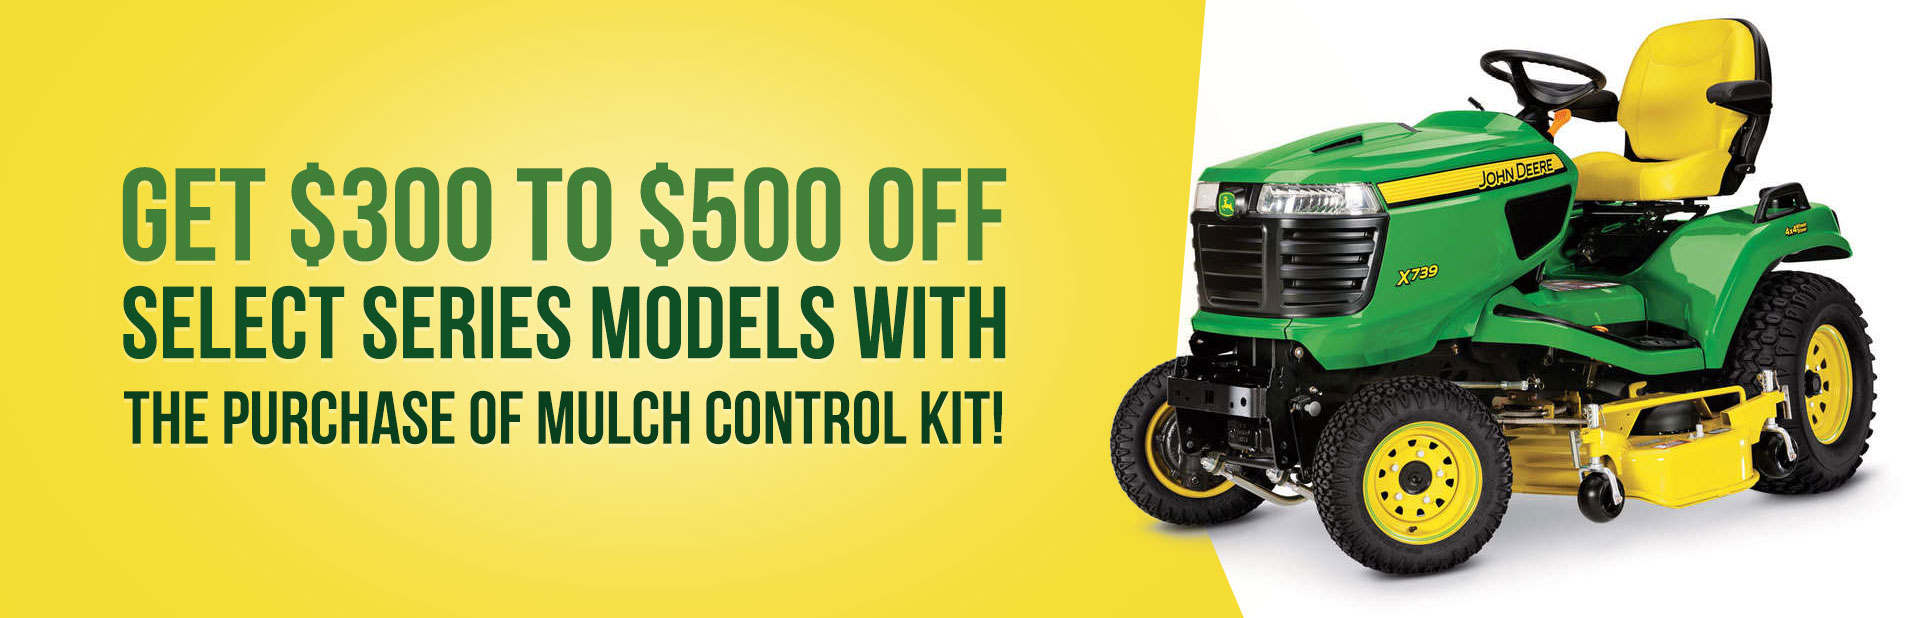 Get $300 to $500 off select series models with the purchase of mulch control kit!